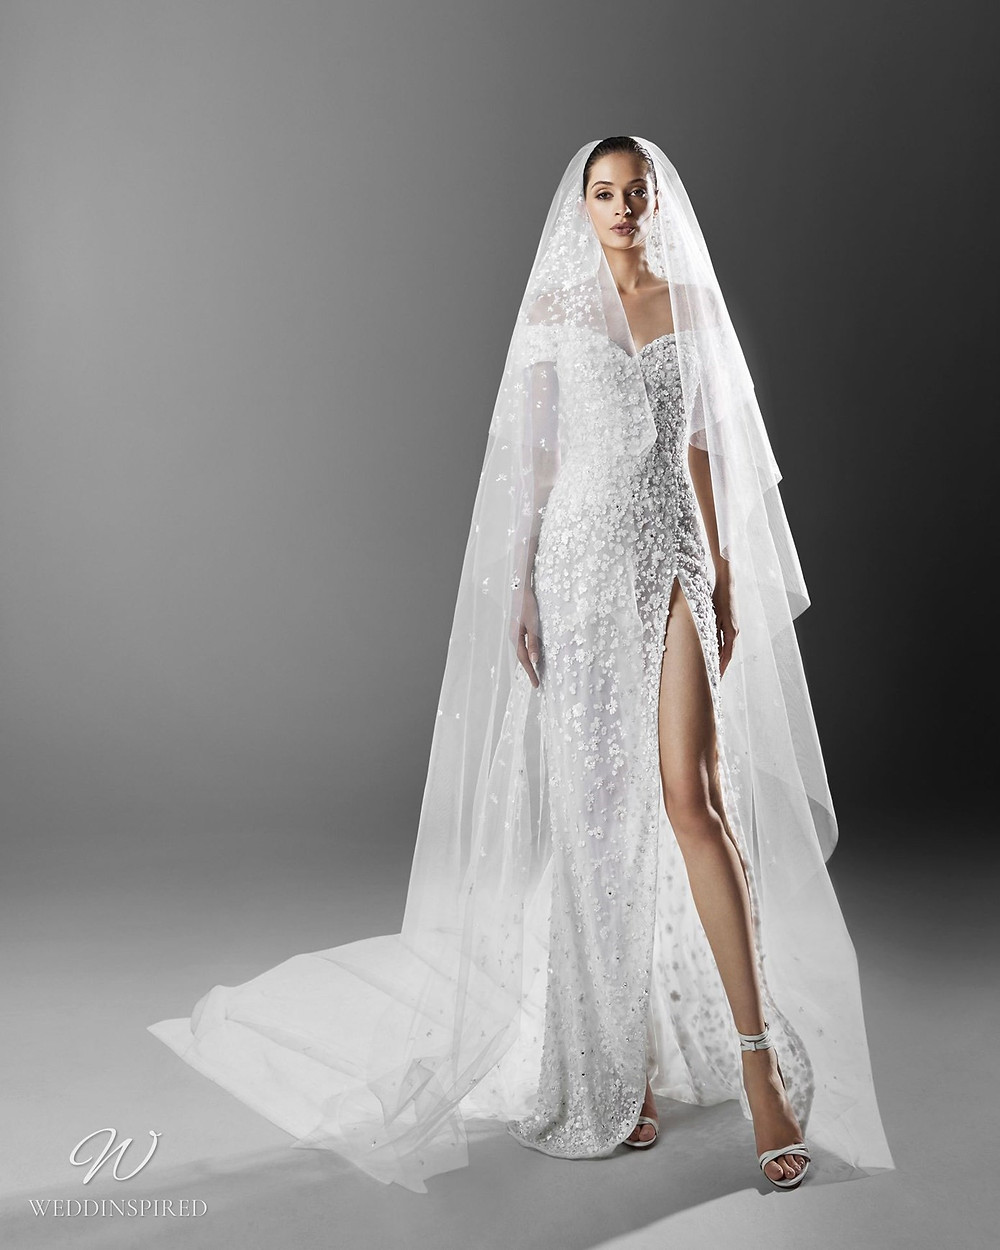 A Zuhair Murad sexy off the shoulder wedding dress with a high slit, crystals and a veil